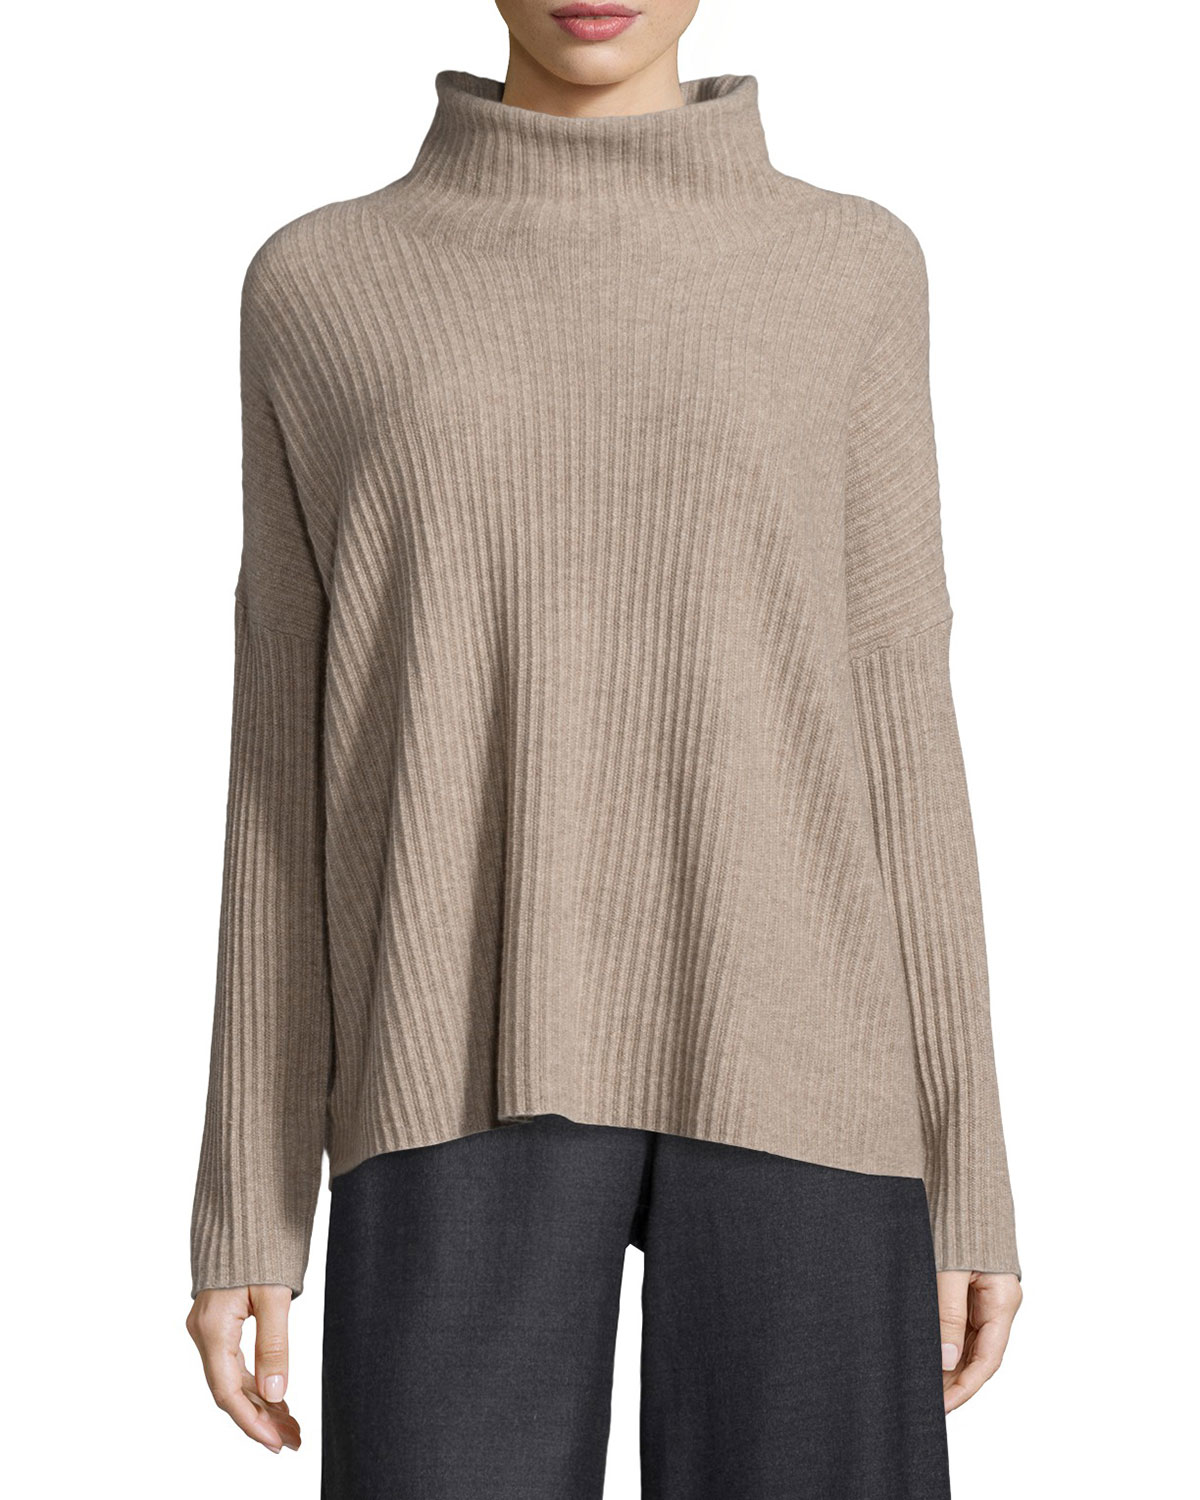 Free shipping and returns on Topshop Oversize Funnel Neck Sweater at softhome24.ml The swingy, '70s-inspired silhouette of a funnel-neck sweater is framed in wide ribbing to enhance the cozy look and feel.4/5(8).